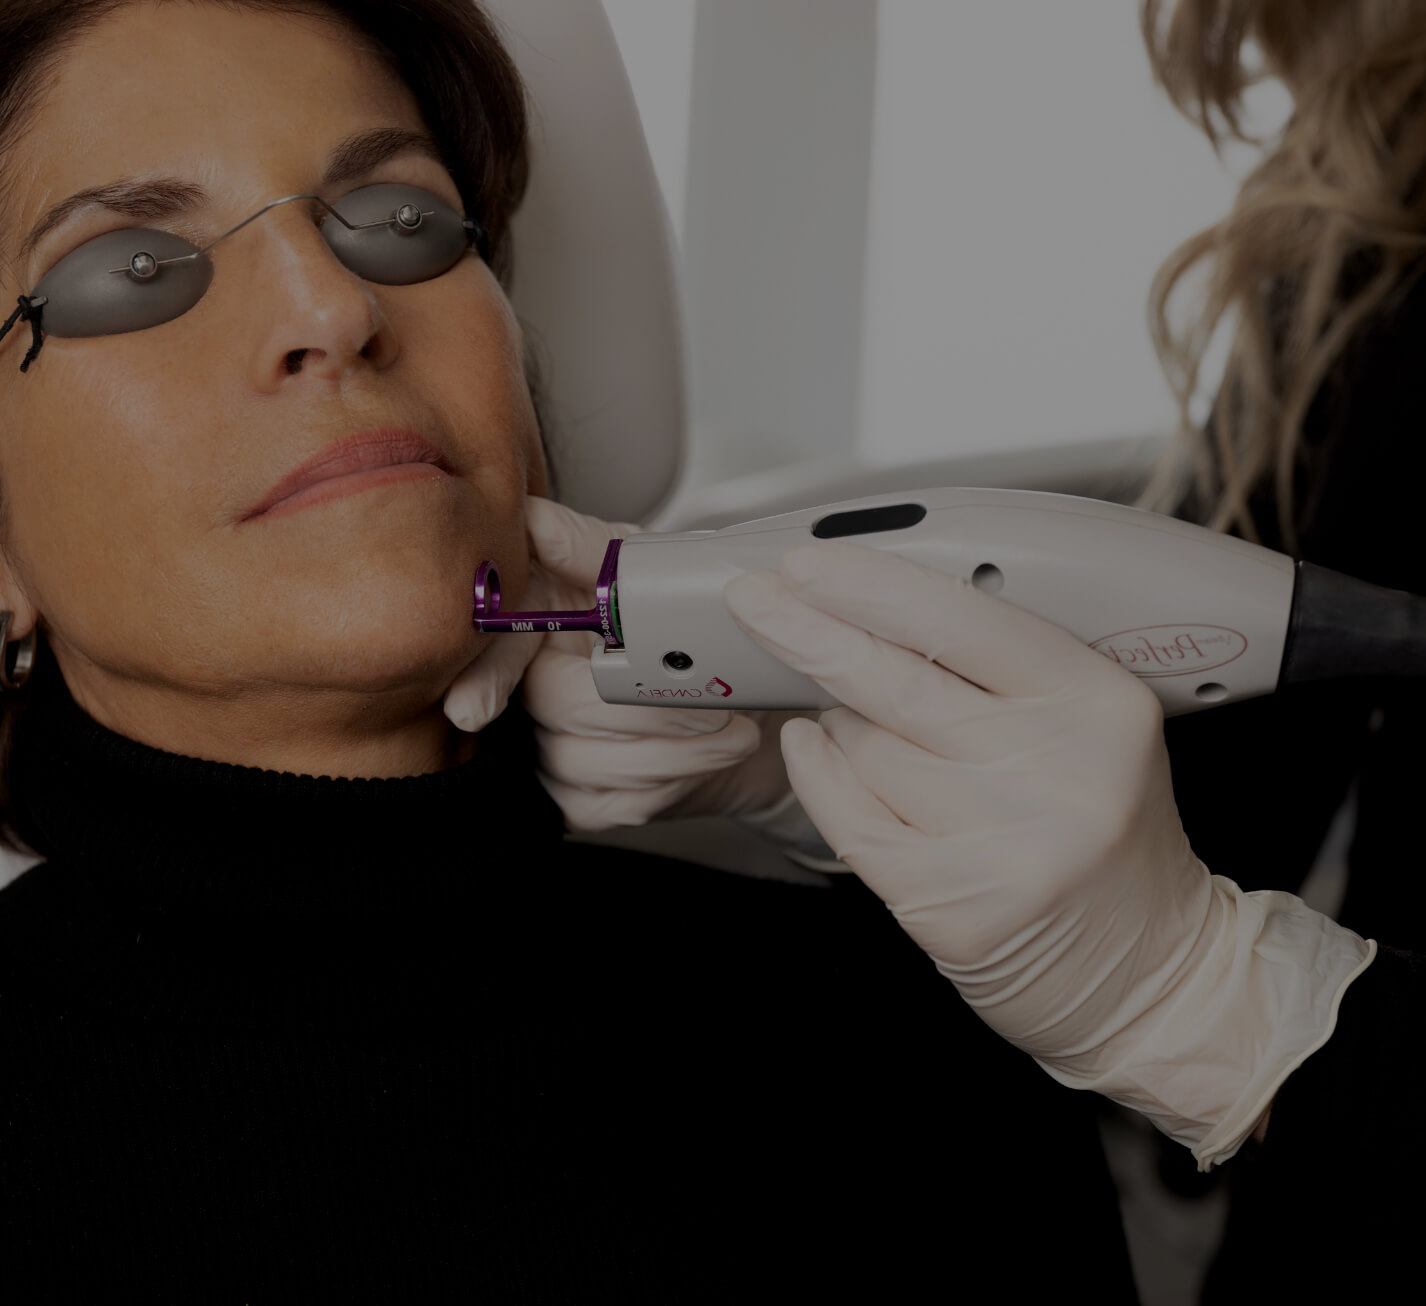 A female patient at Clinique Chloé getting treated on the face with the Vbeam laser